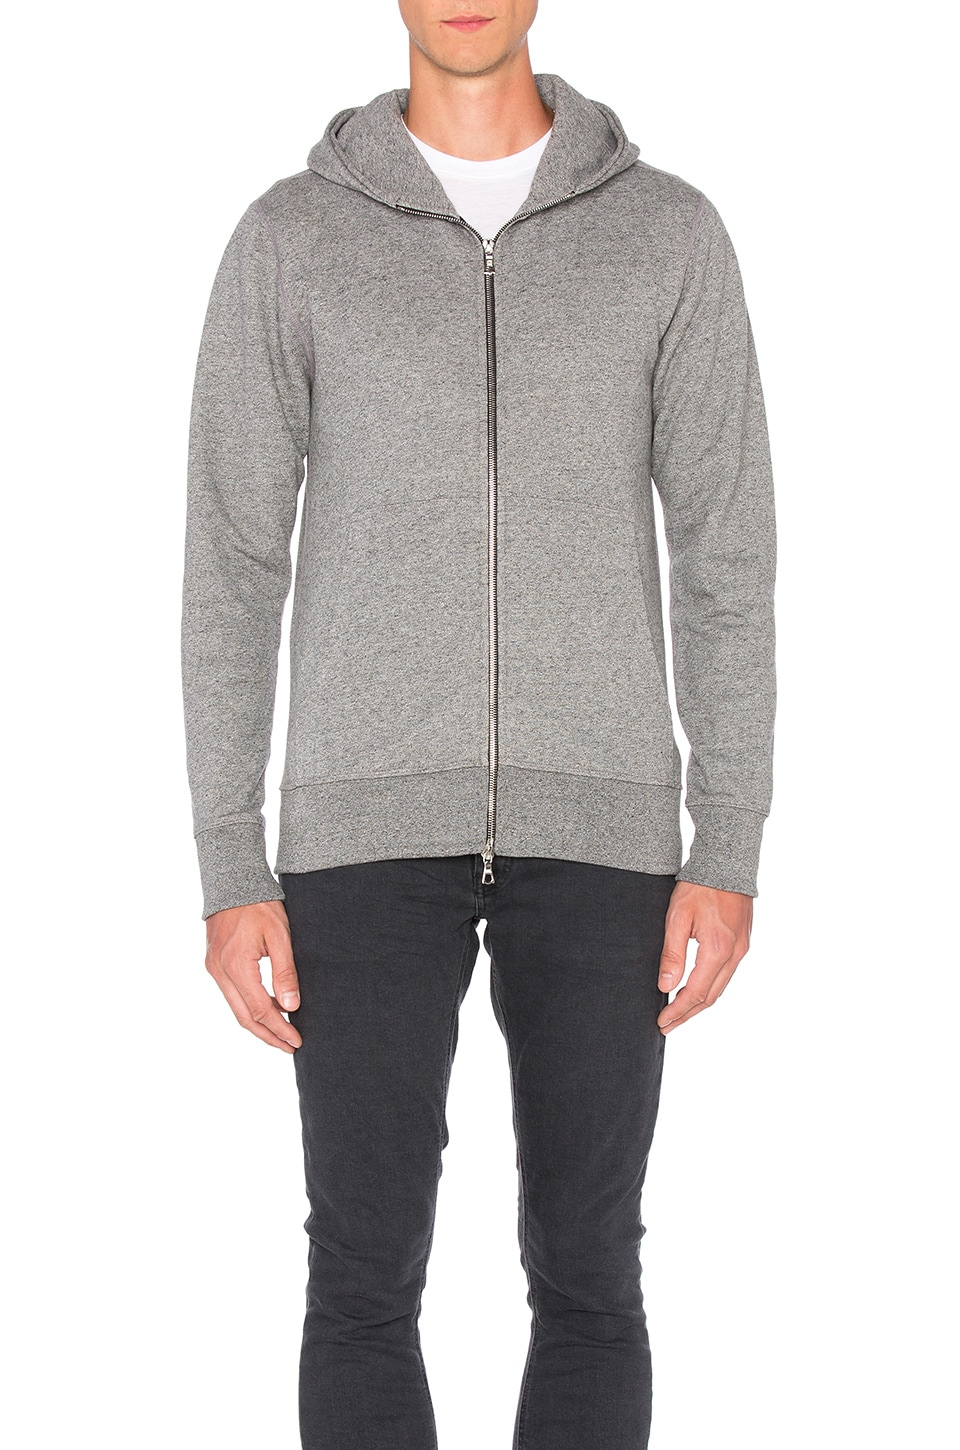 Flash Dual Full Zip by JOHN ELLIOTT